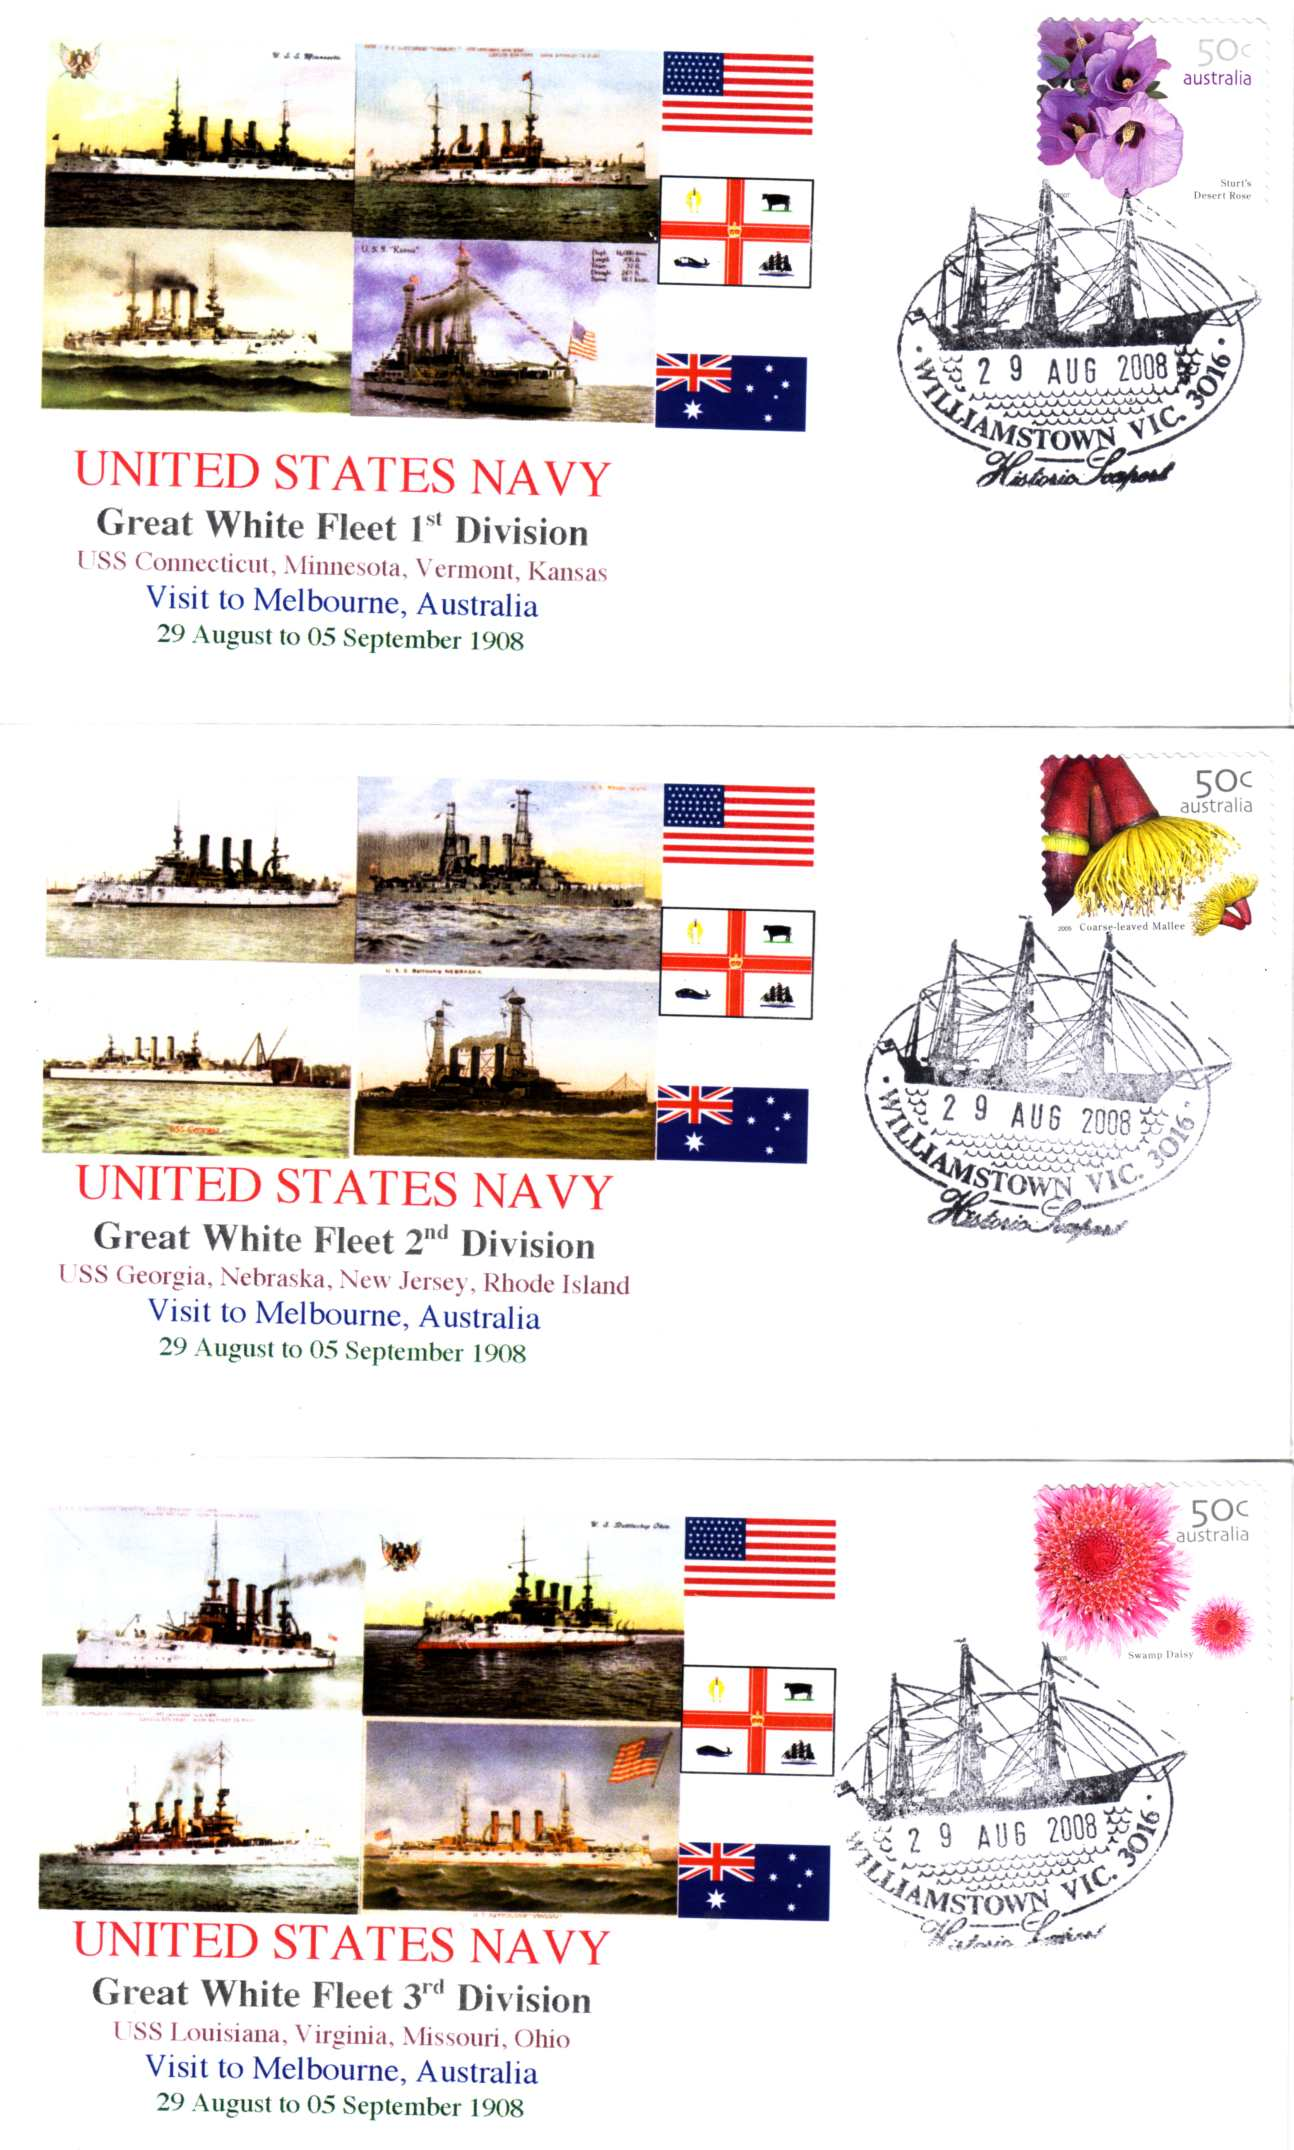 Great White Fleet visit to Melbourne (set of 5 covers)